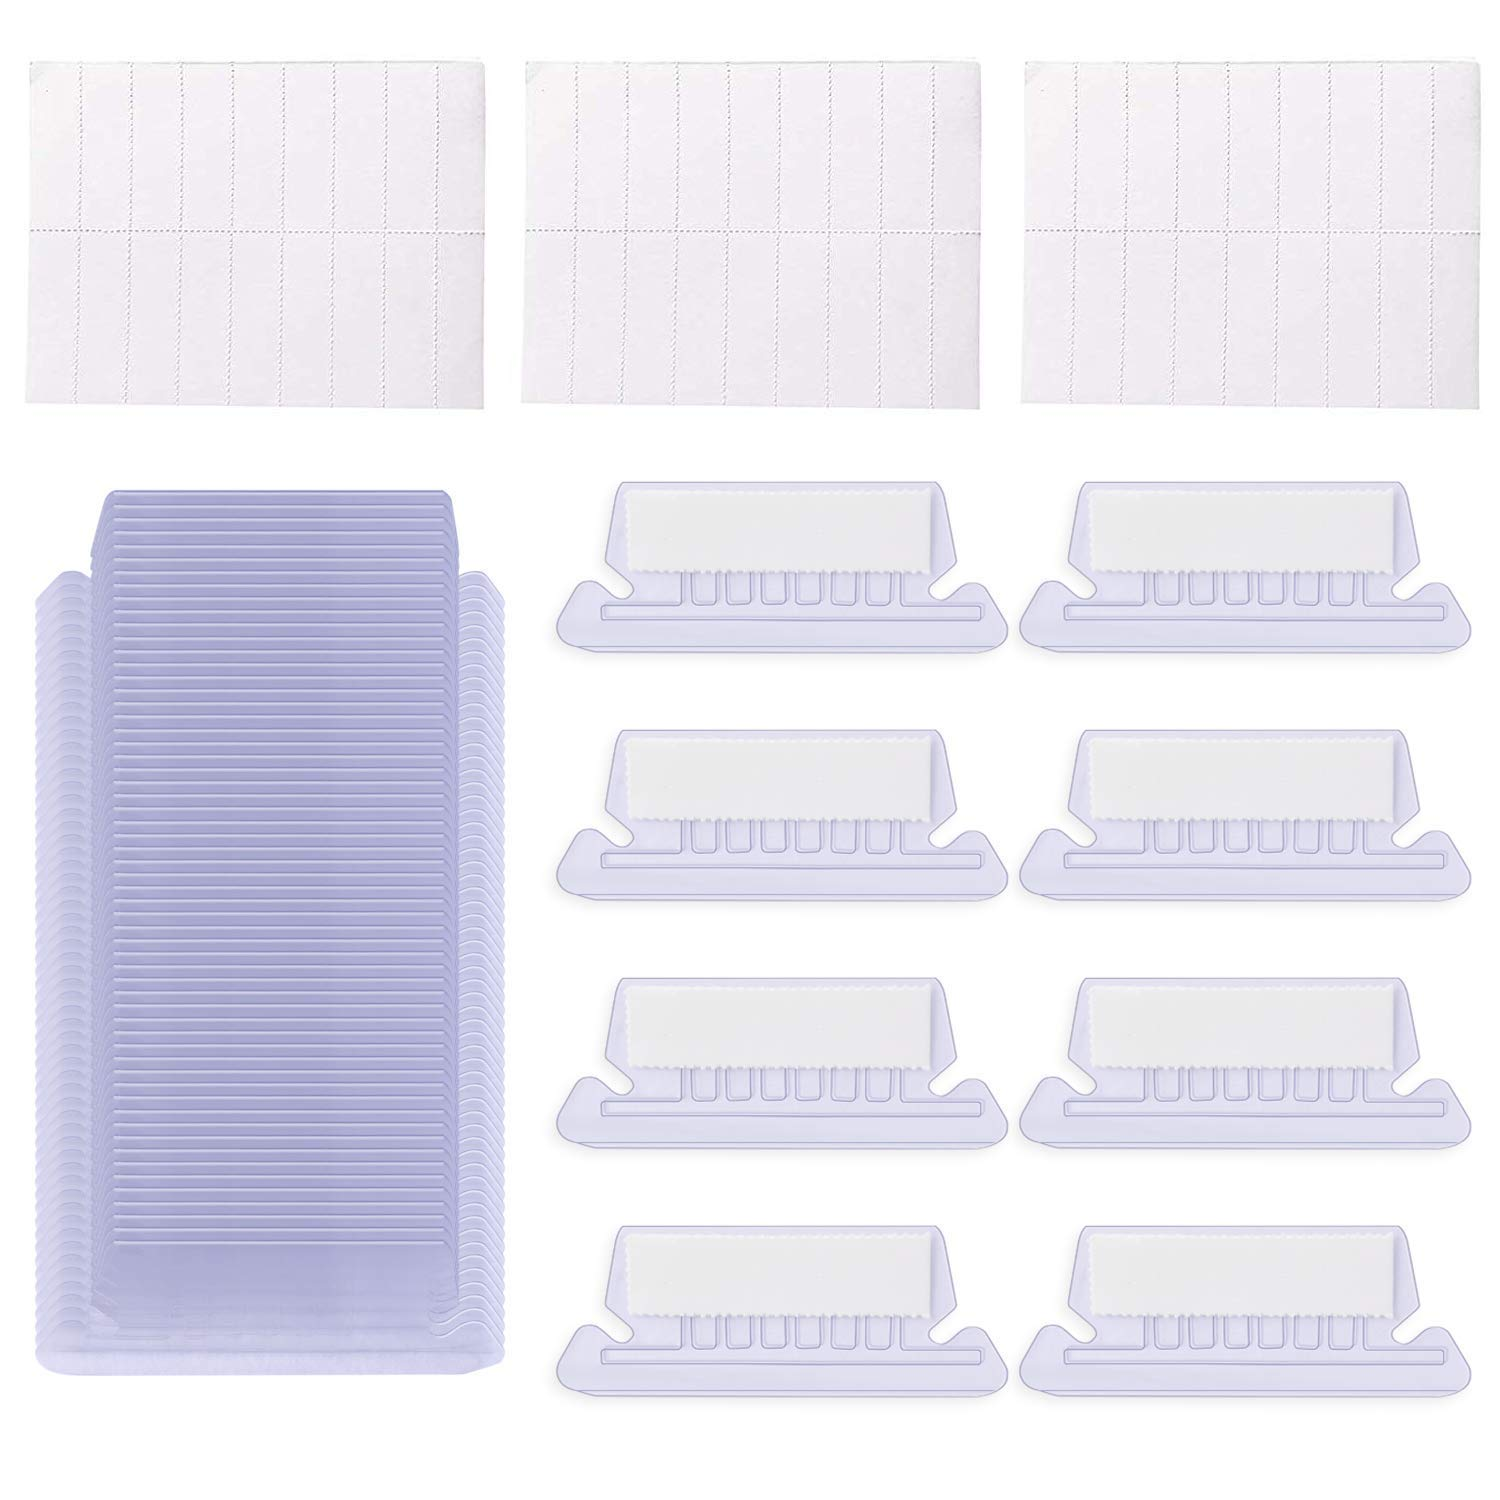 Hanging File Folder Tabs - 200 Sets Insertable Quick Identification Plastic Hanging Folder Tabs - 2 inch Hanging File Inserts File Folder Labels